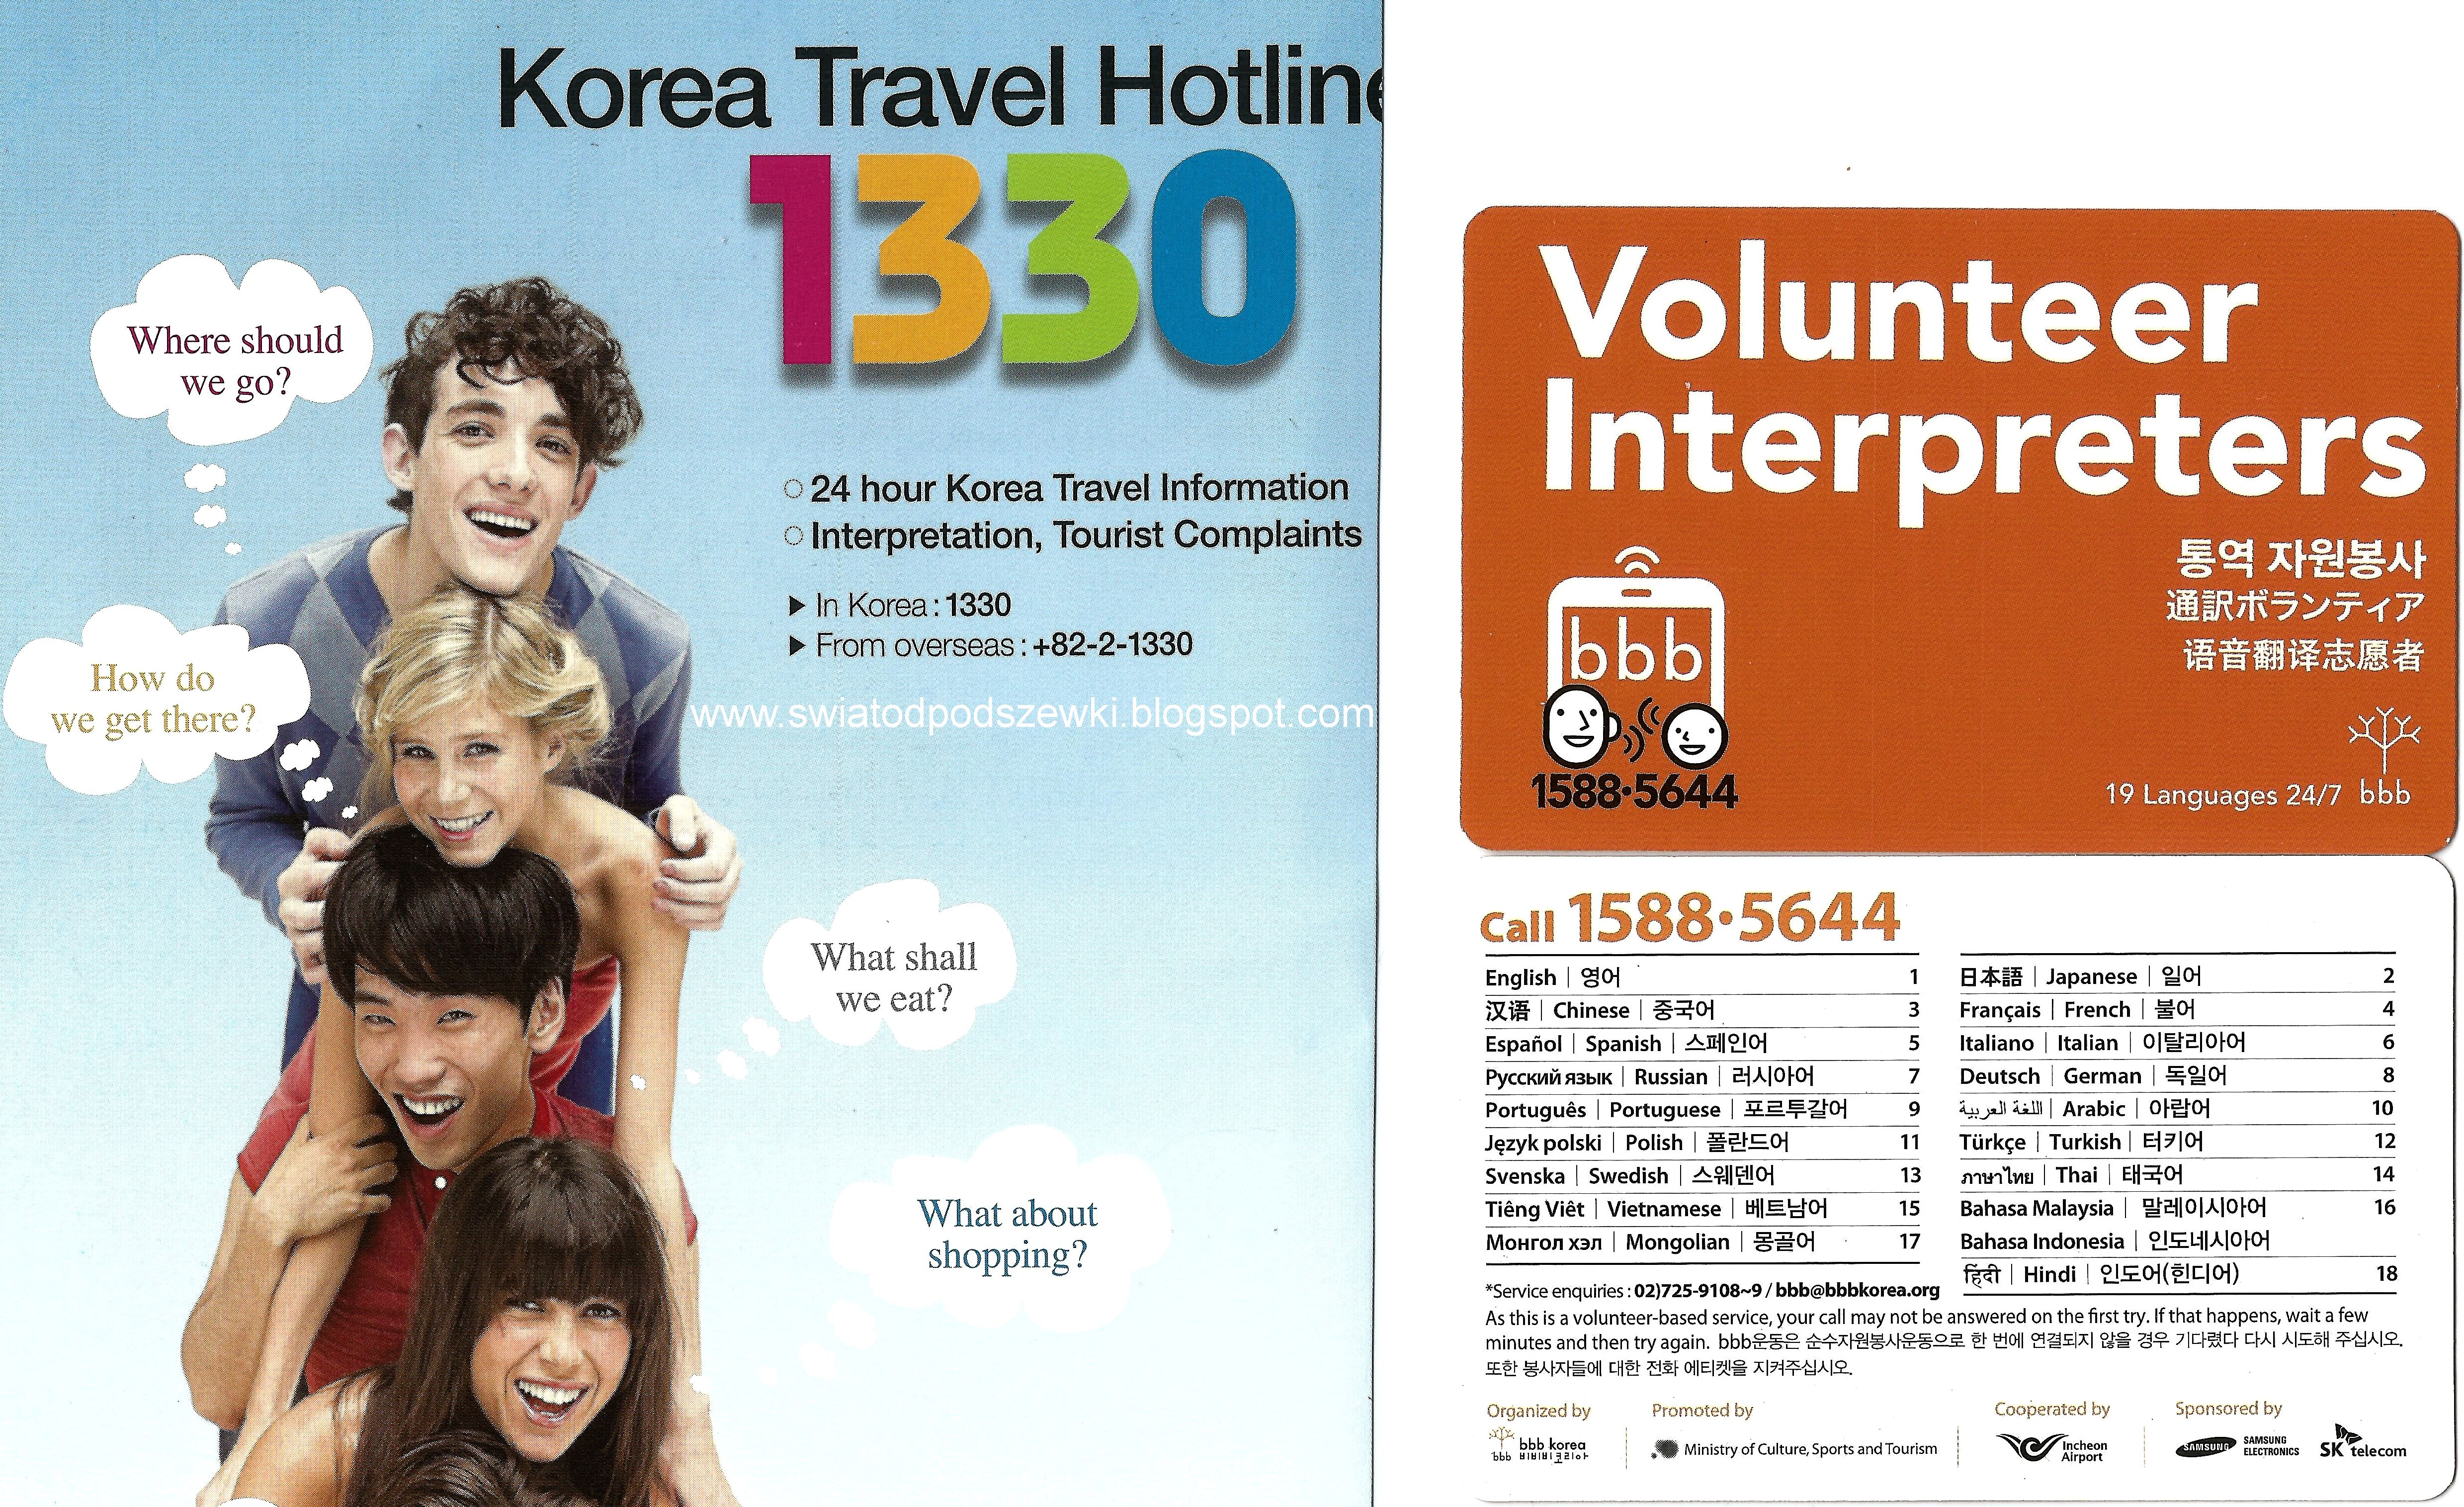 New interpreters service in Korea 1588-5644